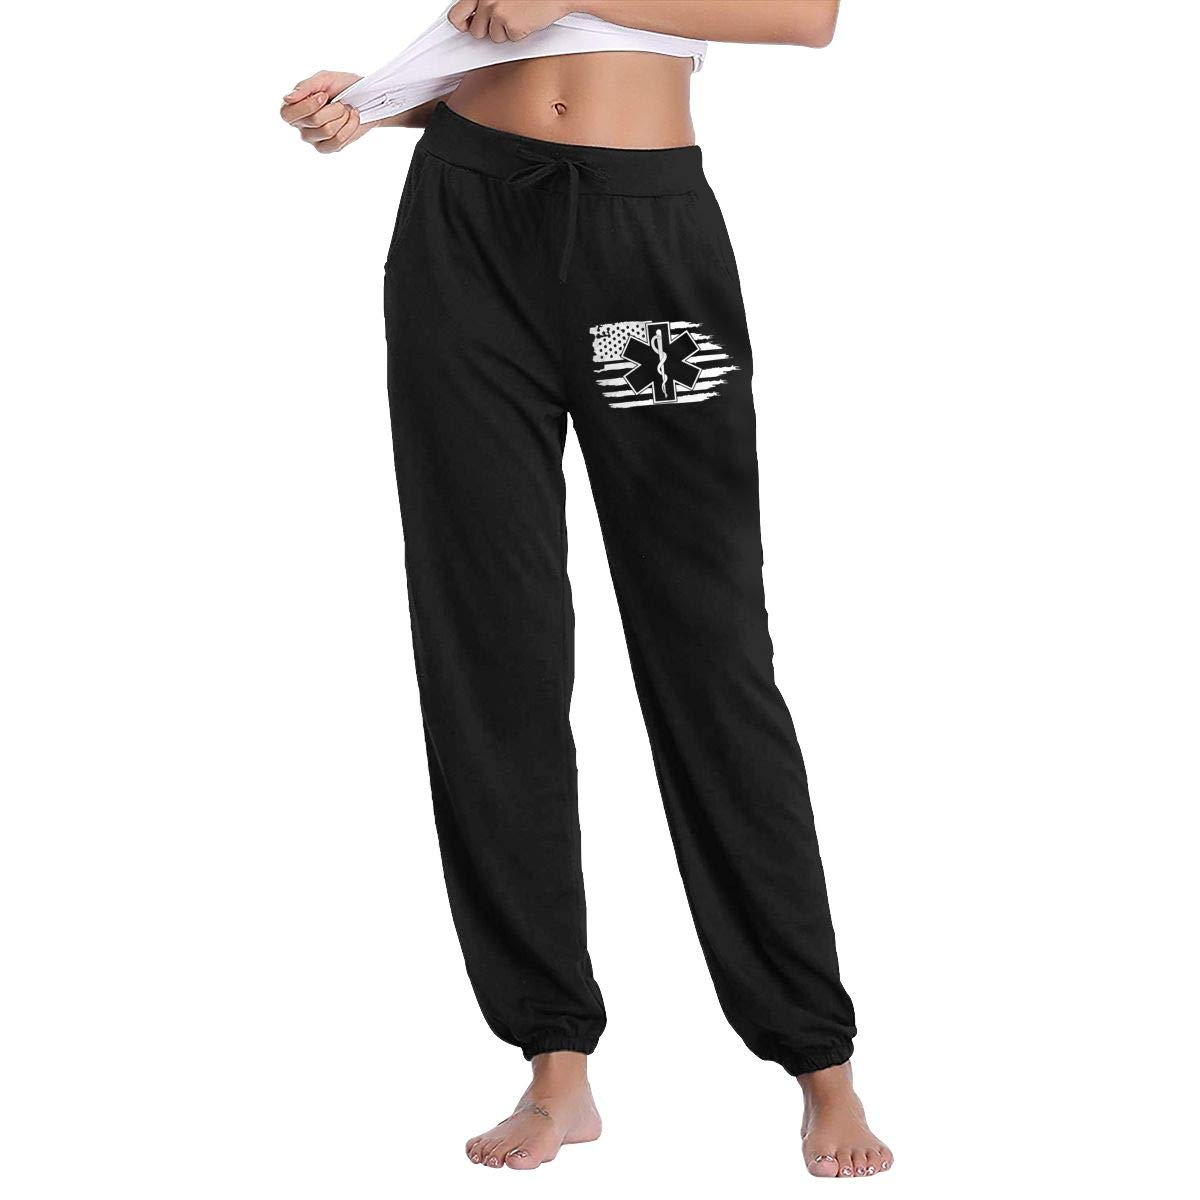 XingxDianD American Flag EMS Star of Life EMT Paramedic Medic Women Joggers  Sweatpants Cotton Long Pants with Pockets at Amazon Women s Clothing store  ecc06986e